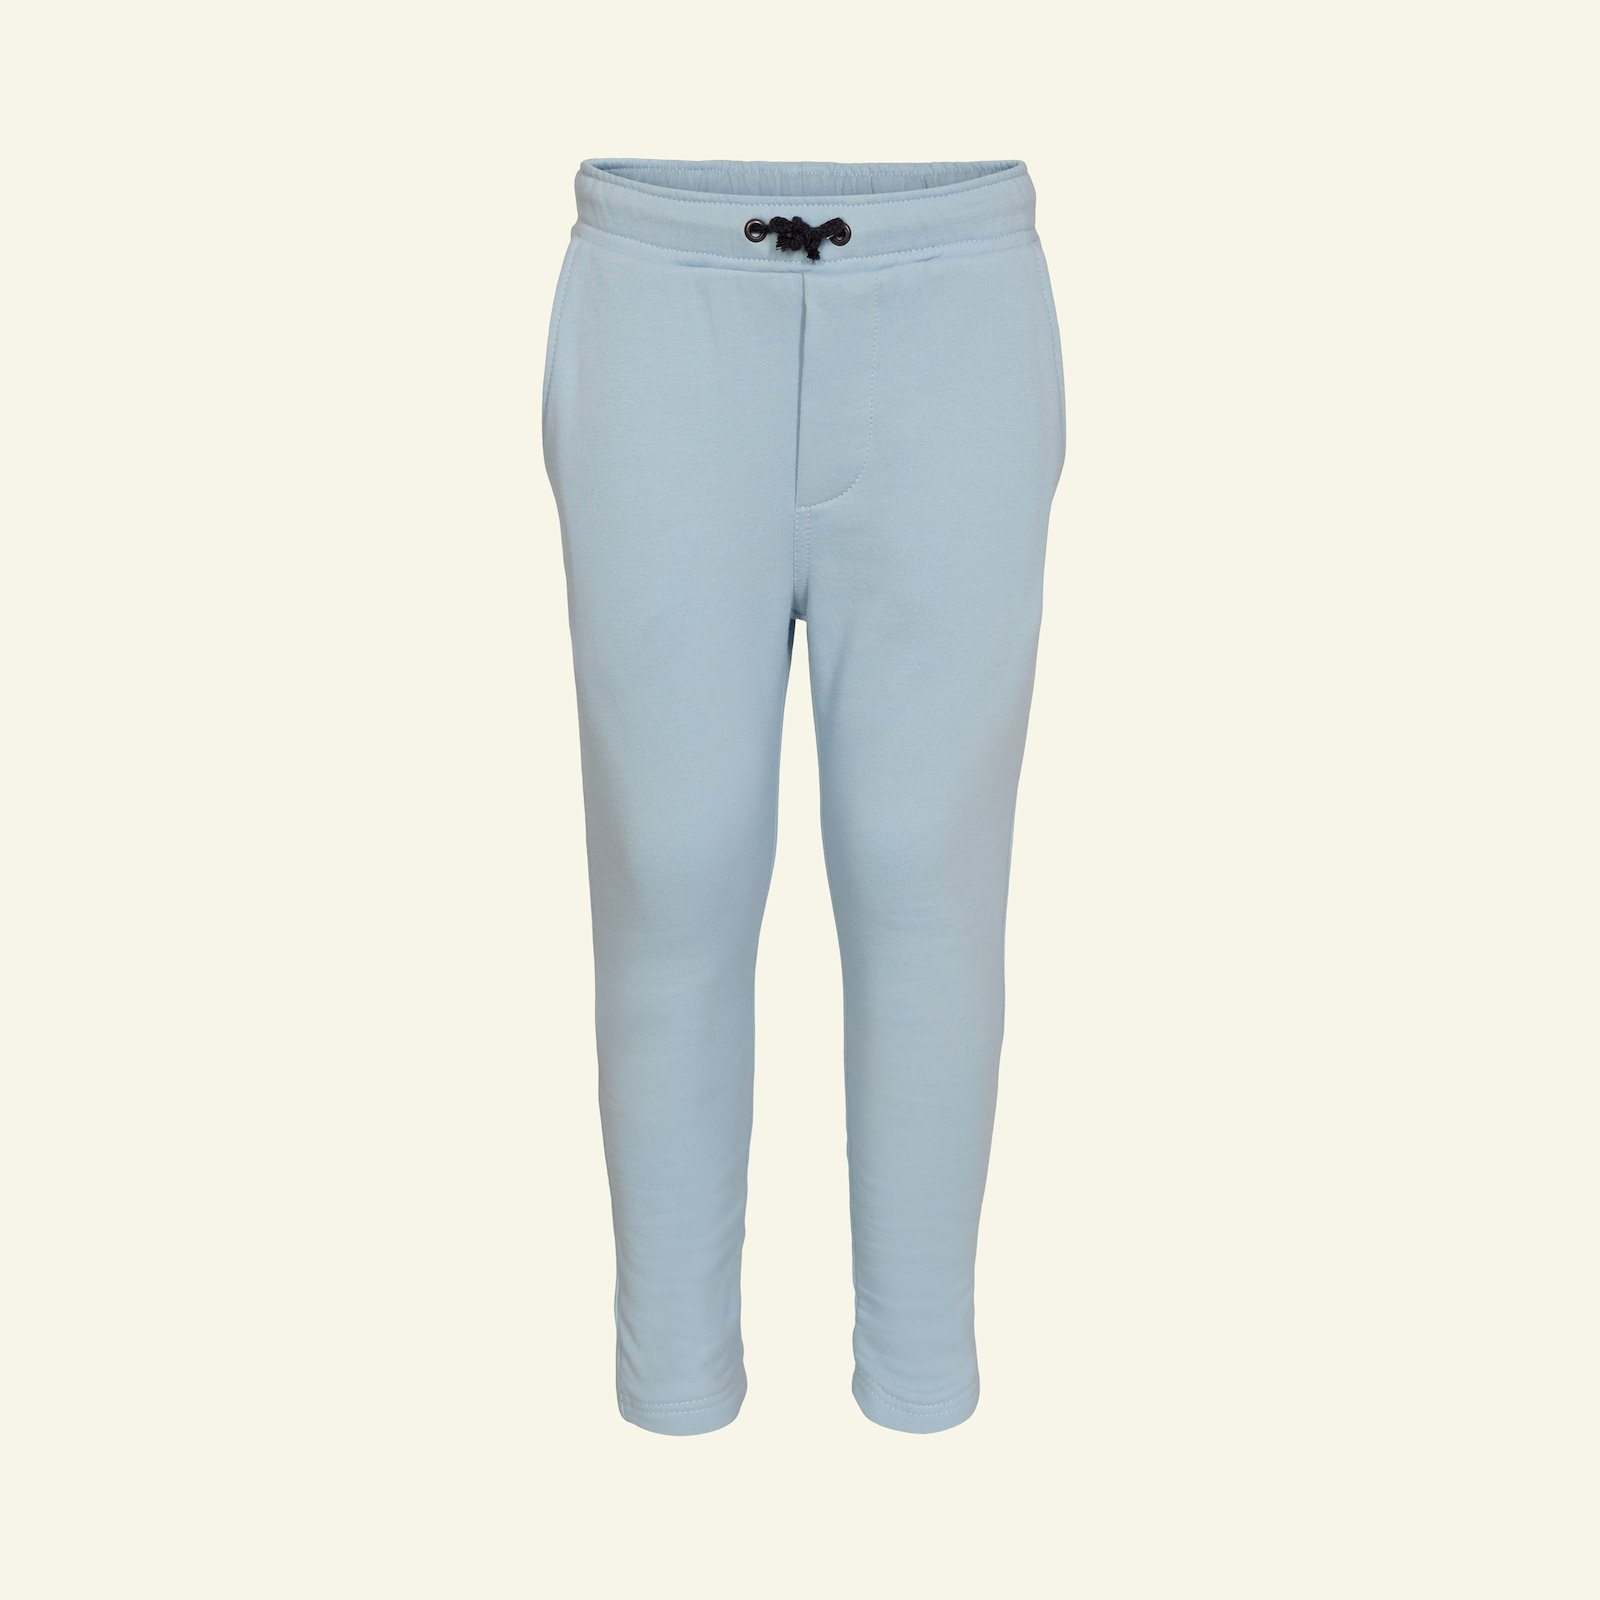 Trousers, 140/10y p60035_211777_sskit